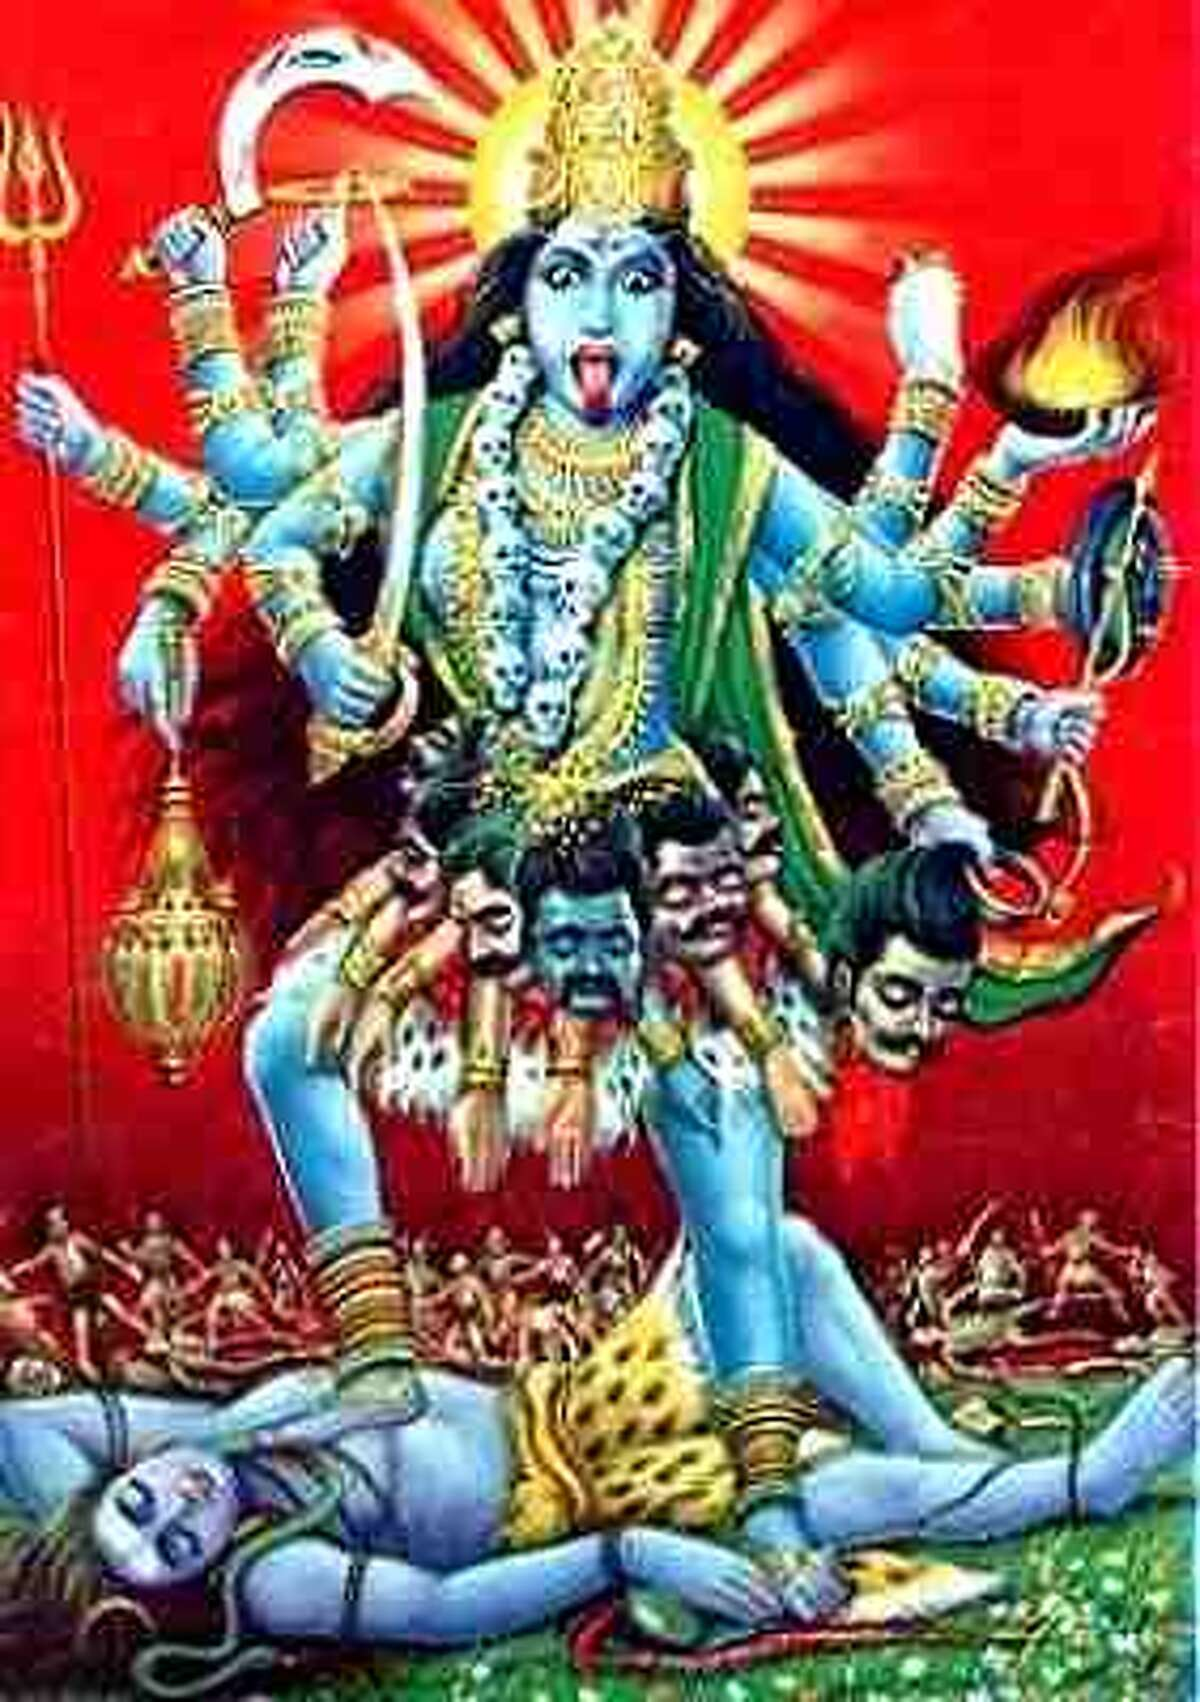 Hindu goddess Kali may look intimidating--partly because she likes to wear a necklace of human skulls--but she is famous as a slayer of evil and champion of the good. When a Hindu swastika faces left, it denotes a connection to some elements of Kali. If it faces right, it is a symbol of luck and prosperity, once a common decoration for wedding invitations. Many in the Hindu community want New York school curriculum about symbols of hate to explain to students that the Hindu swastika is an ancient holy symbol with no relationship to the Nazis.